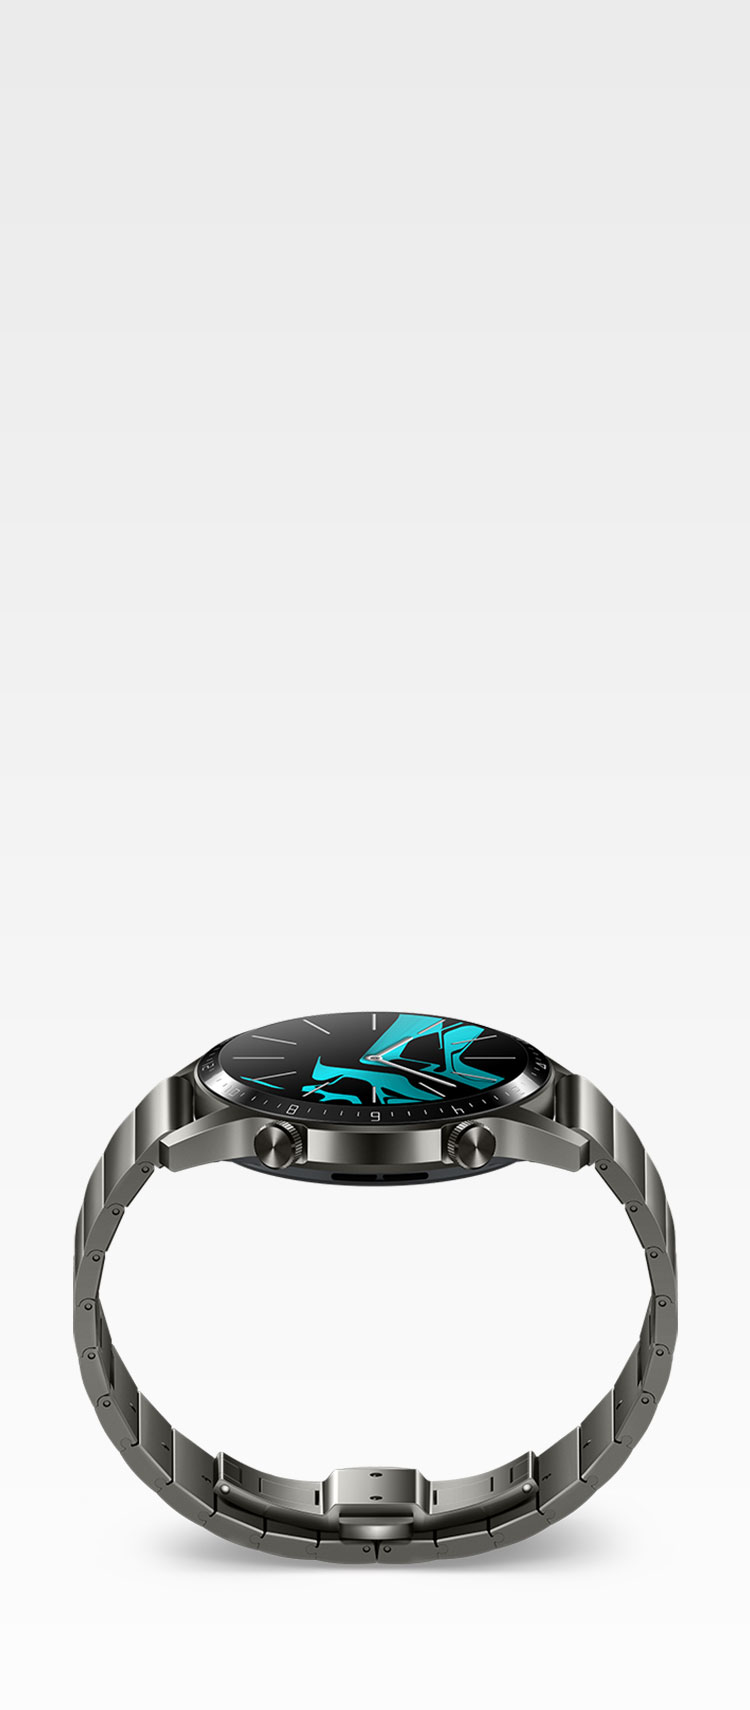 HUAWEI WATCH GT 2 New Aesthetic Design